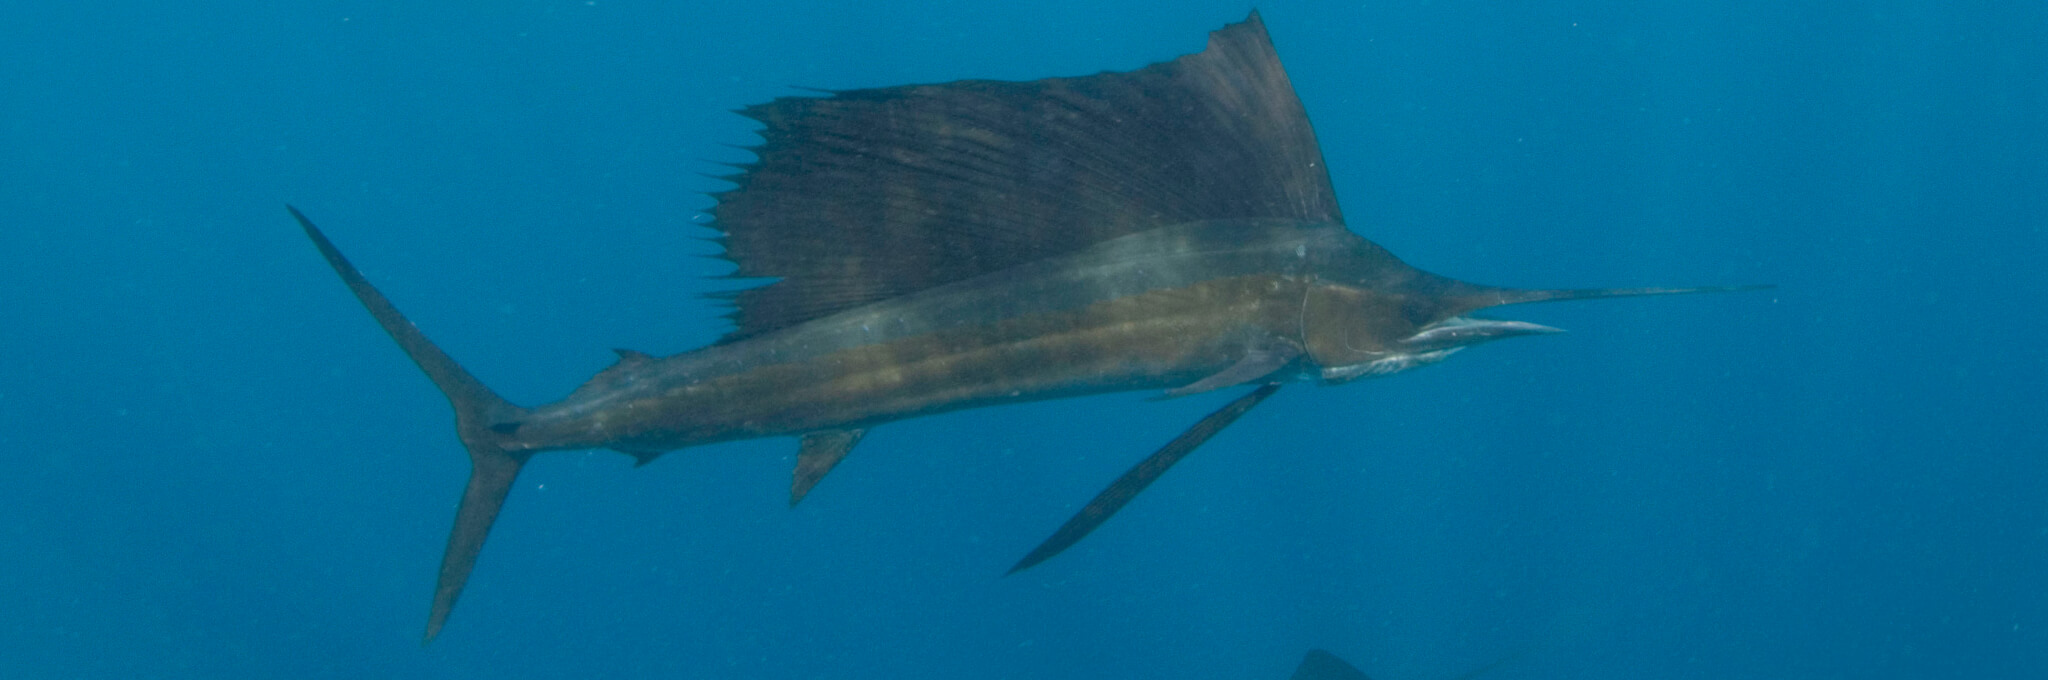 Scuba Travel, Sailfish